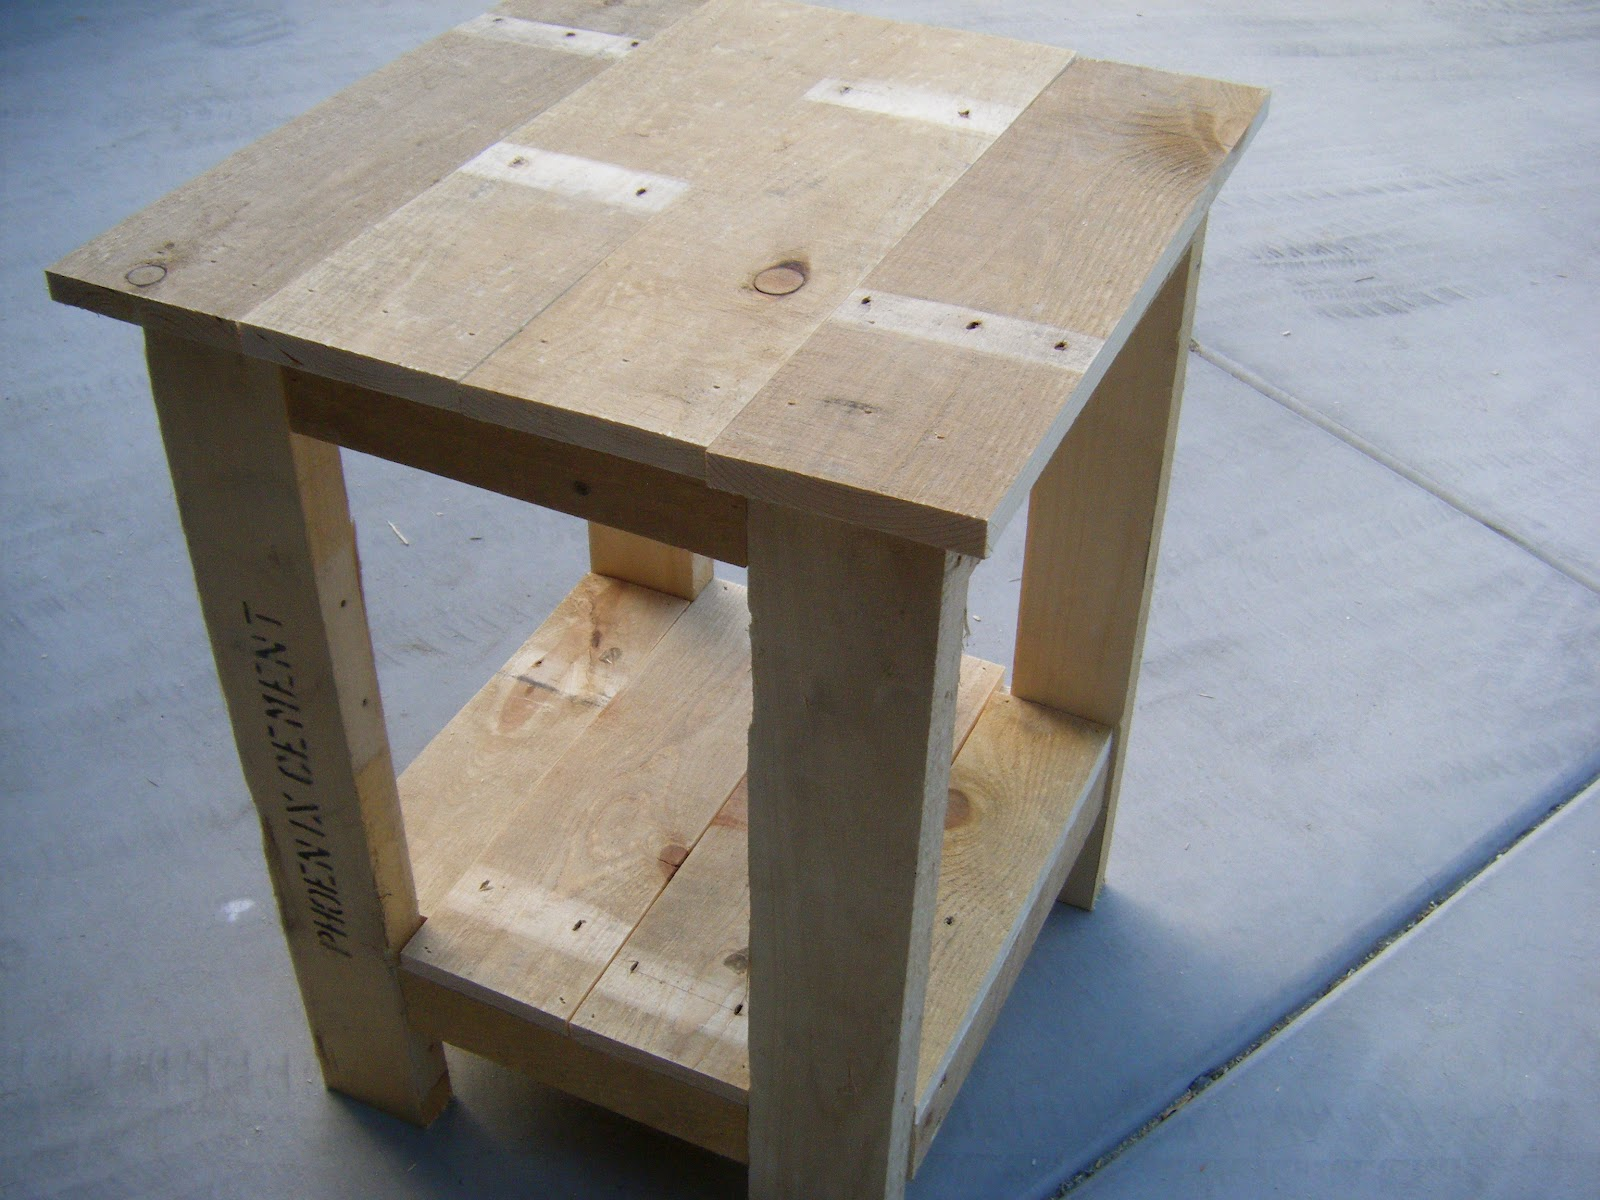 Woodworking pallet end table plans PDF Free Download